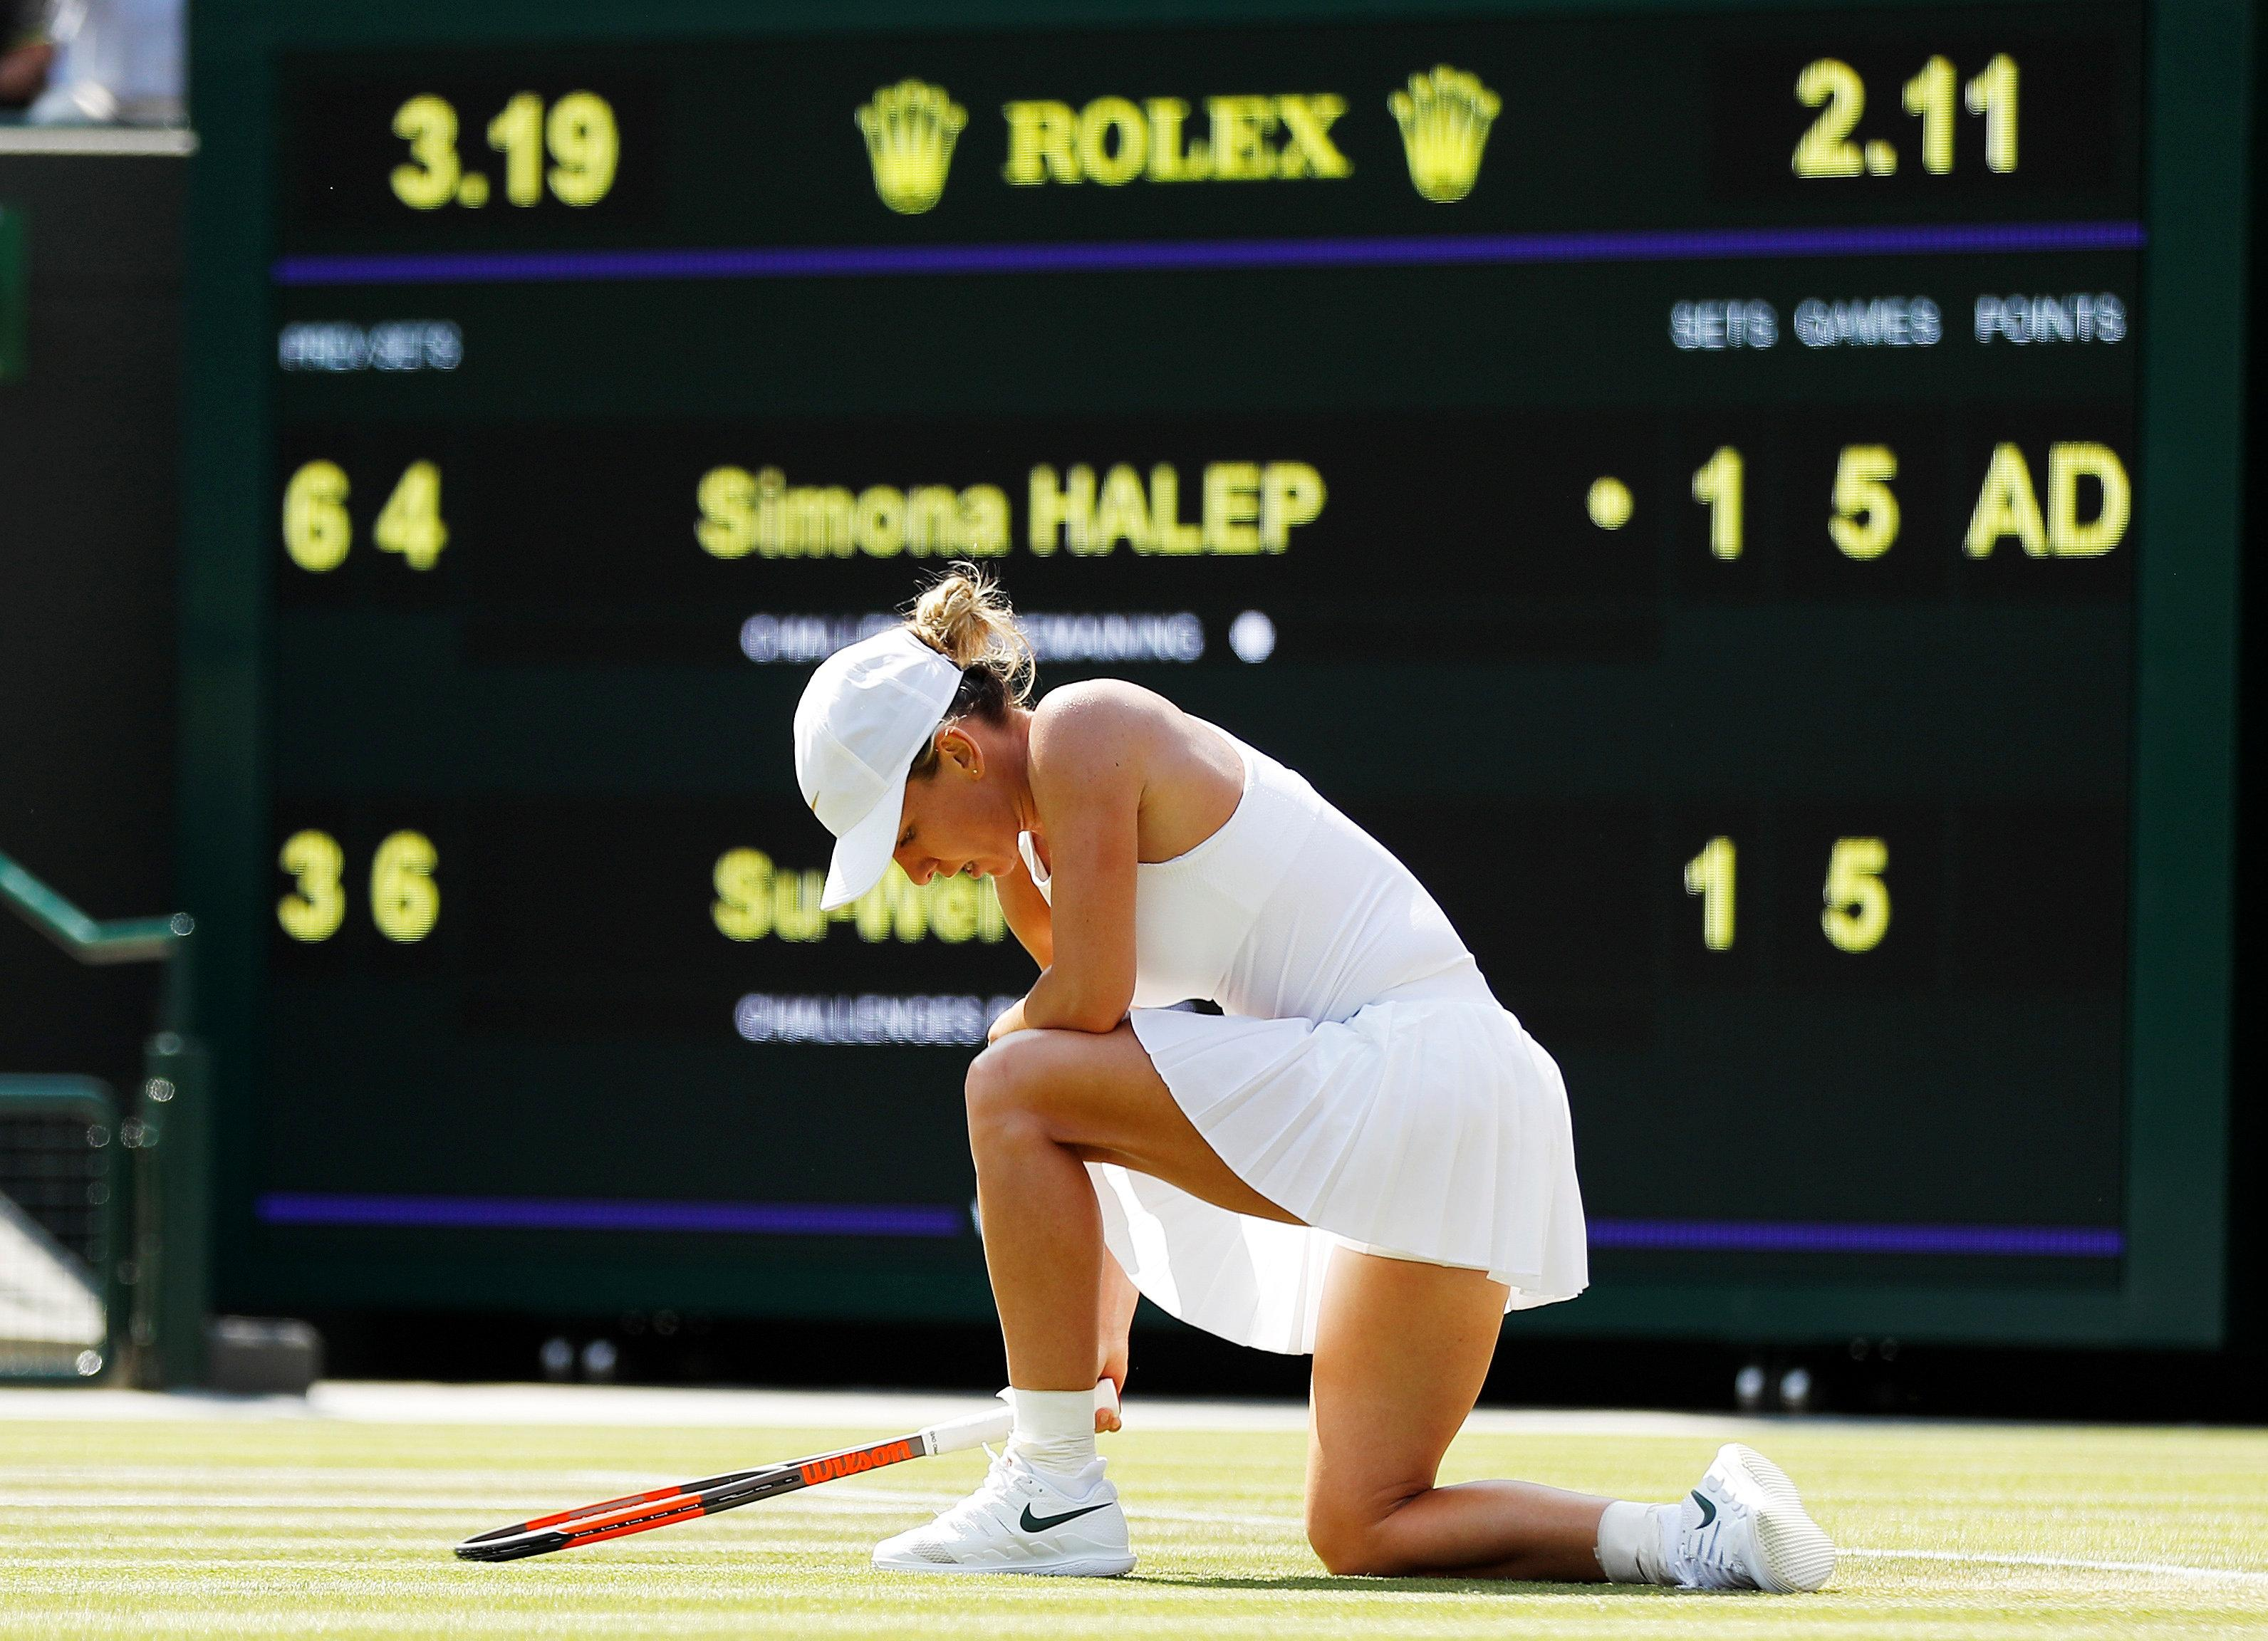 World number one Simona Halep has seen her Wimbledon dreams ended by a shock defeat